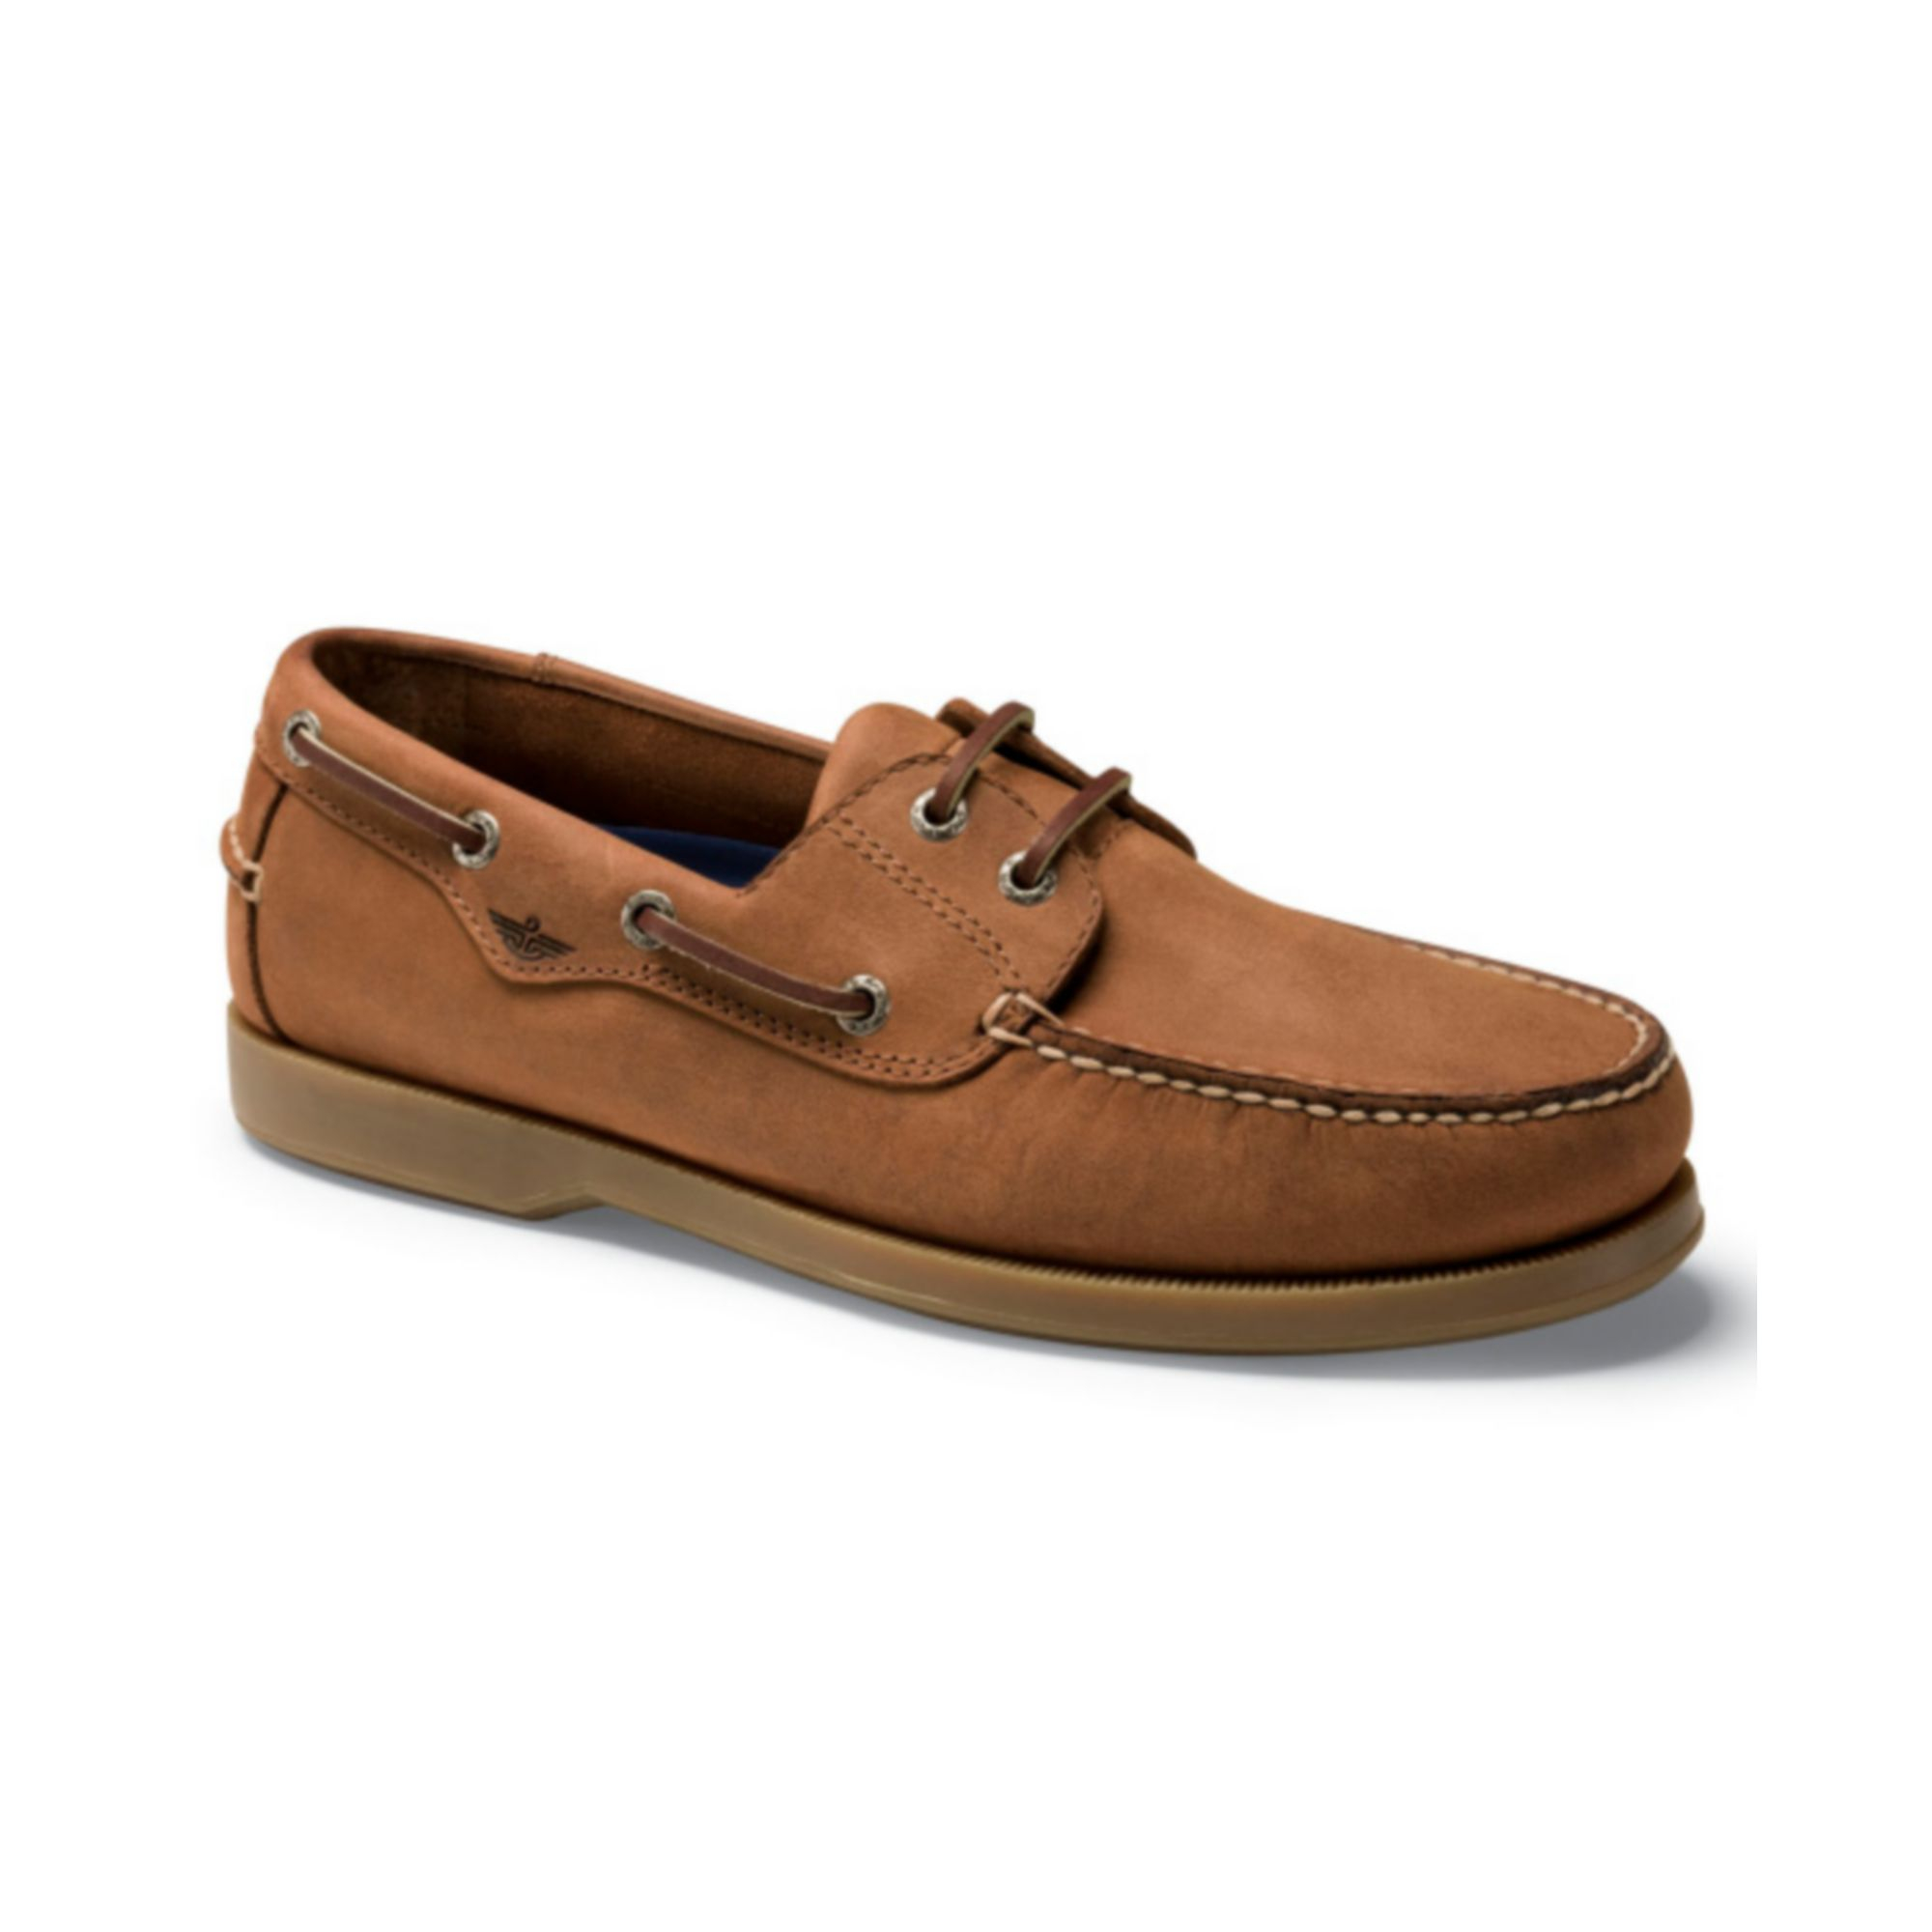 Dockers Castaway Leather Mens Boat Shoes